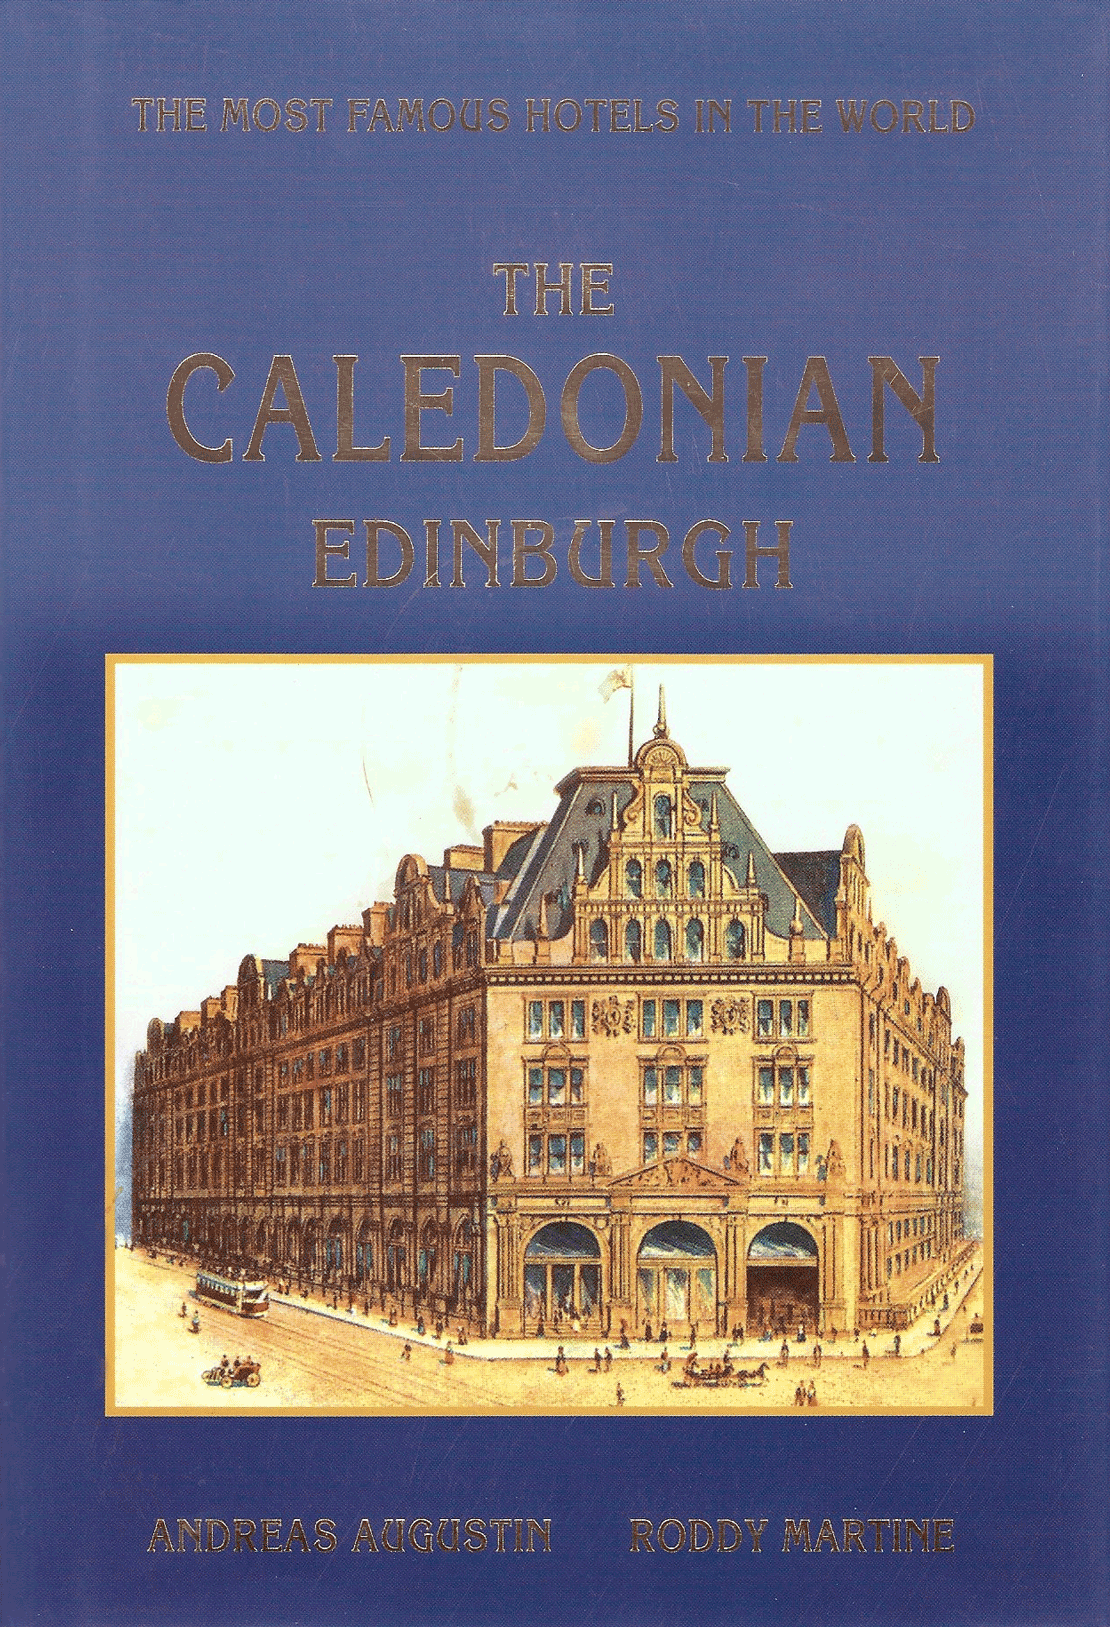 The Caledonian – Edinburgh, Scotland (English)